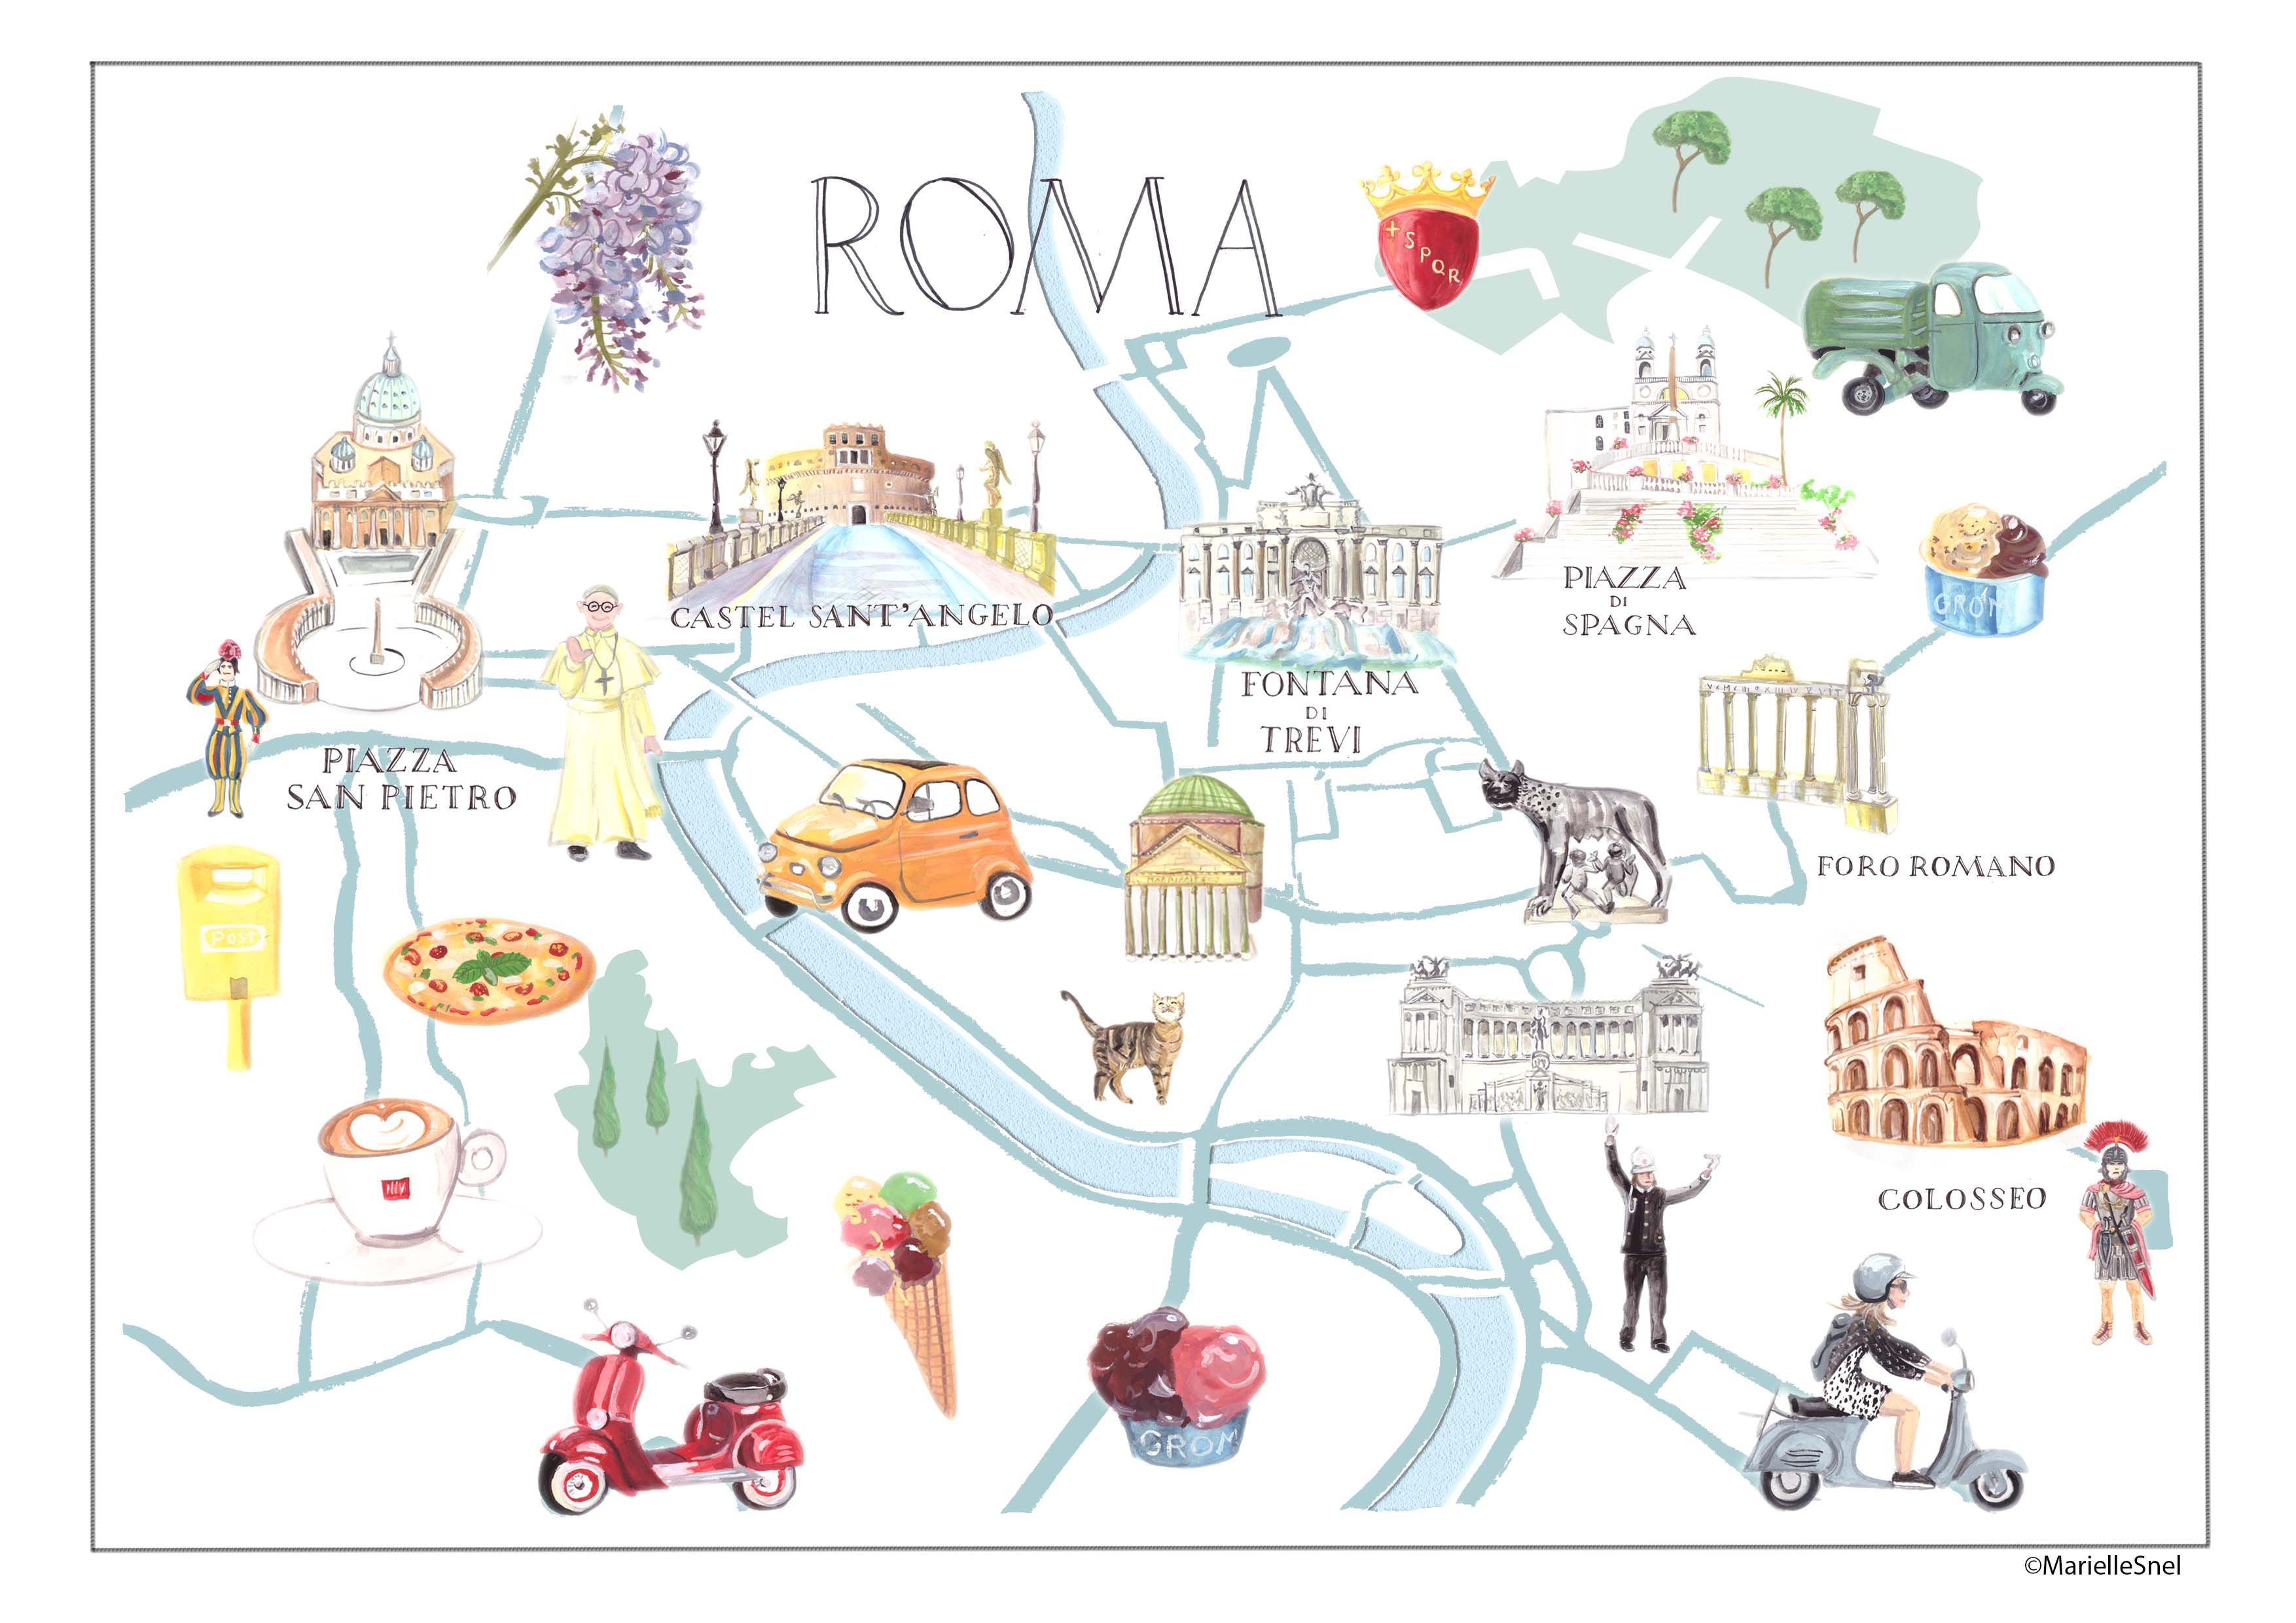 Rome On Map Of Italy.The City Of Rome Italy Ciao Roma Illustrated Map For Tiramisushi